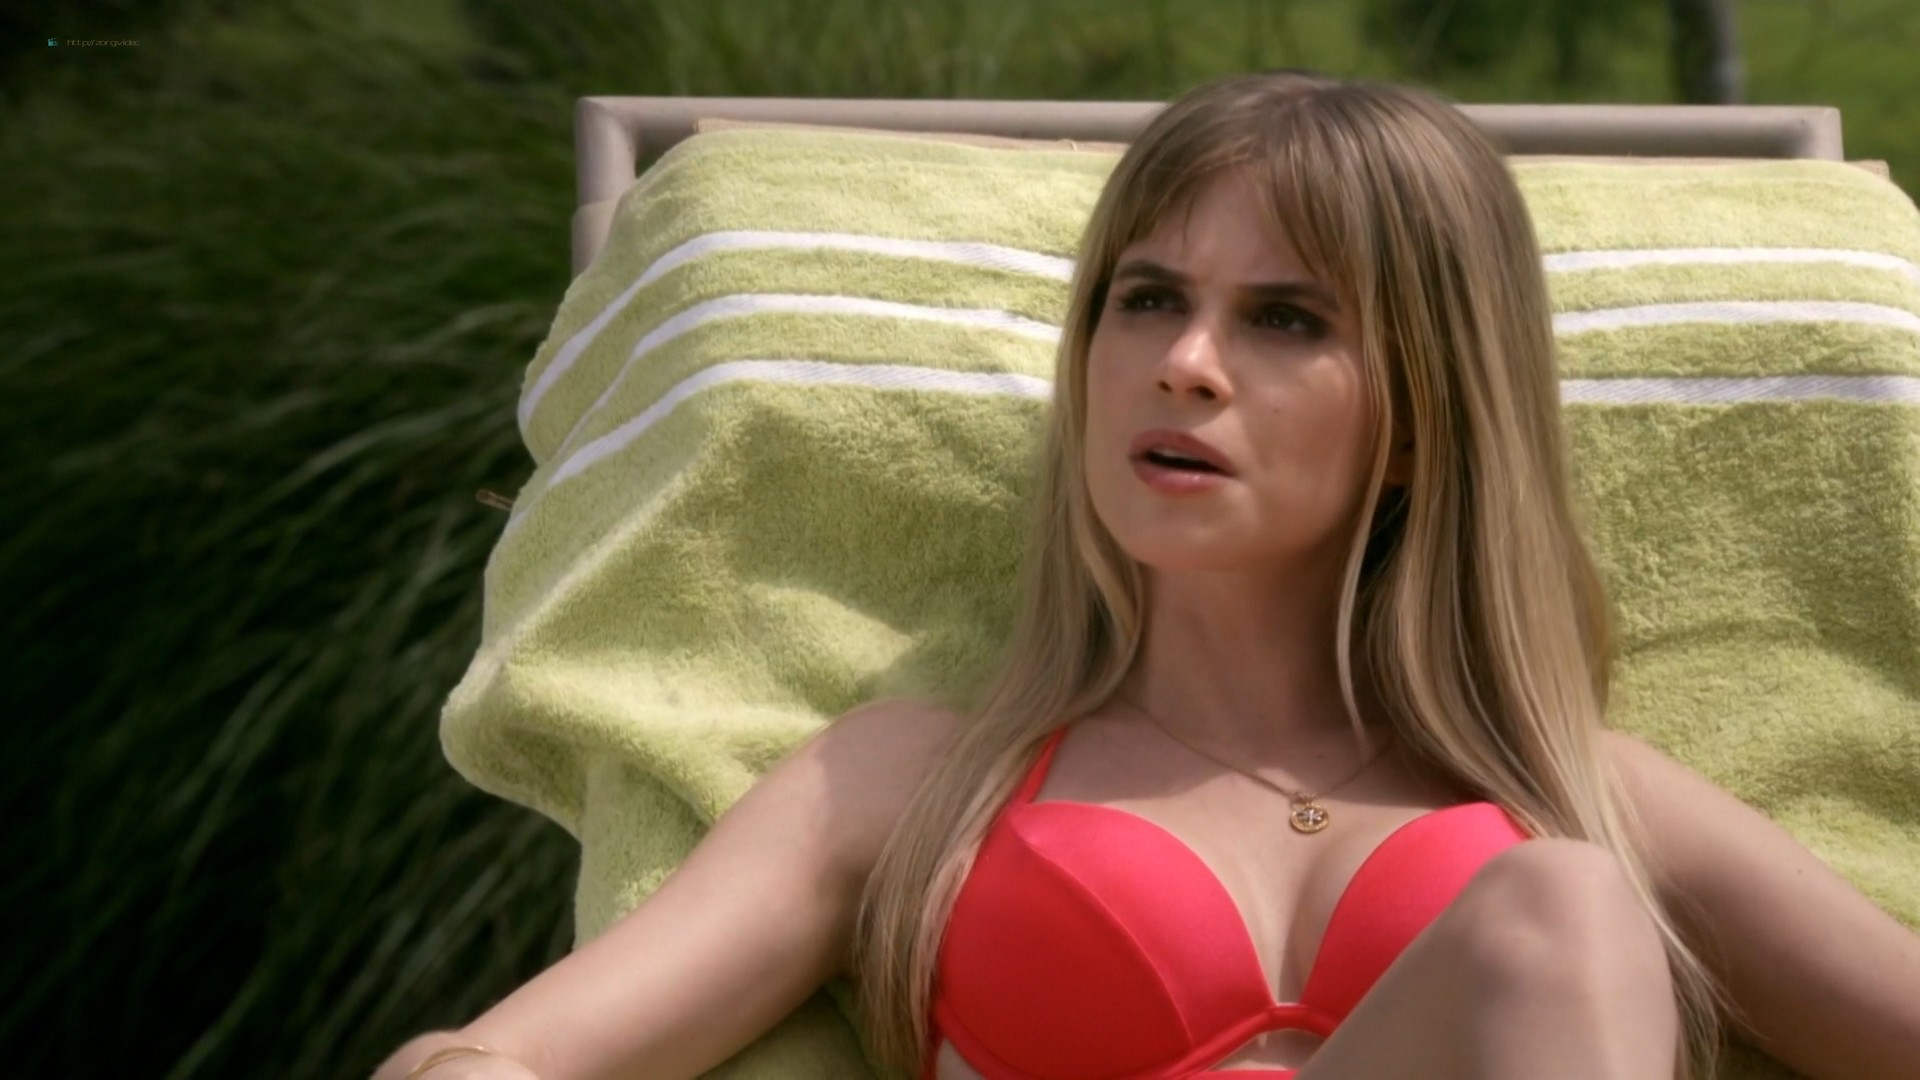 "Carlson Young hot in bra and panties – <span class=""highlight highlight-""red"""">Scream (2015) s1e3-4-8 hd1080p</span>. Carlson Young hot in bra and panties compilation from season one episode 3-4 and 8. (14)"